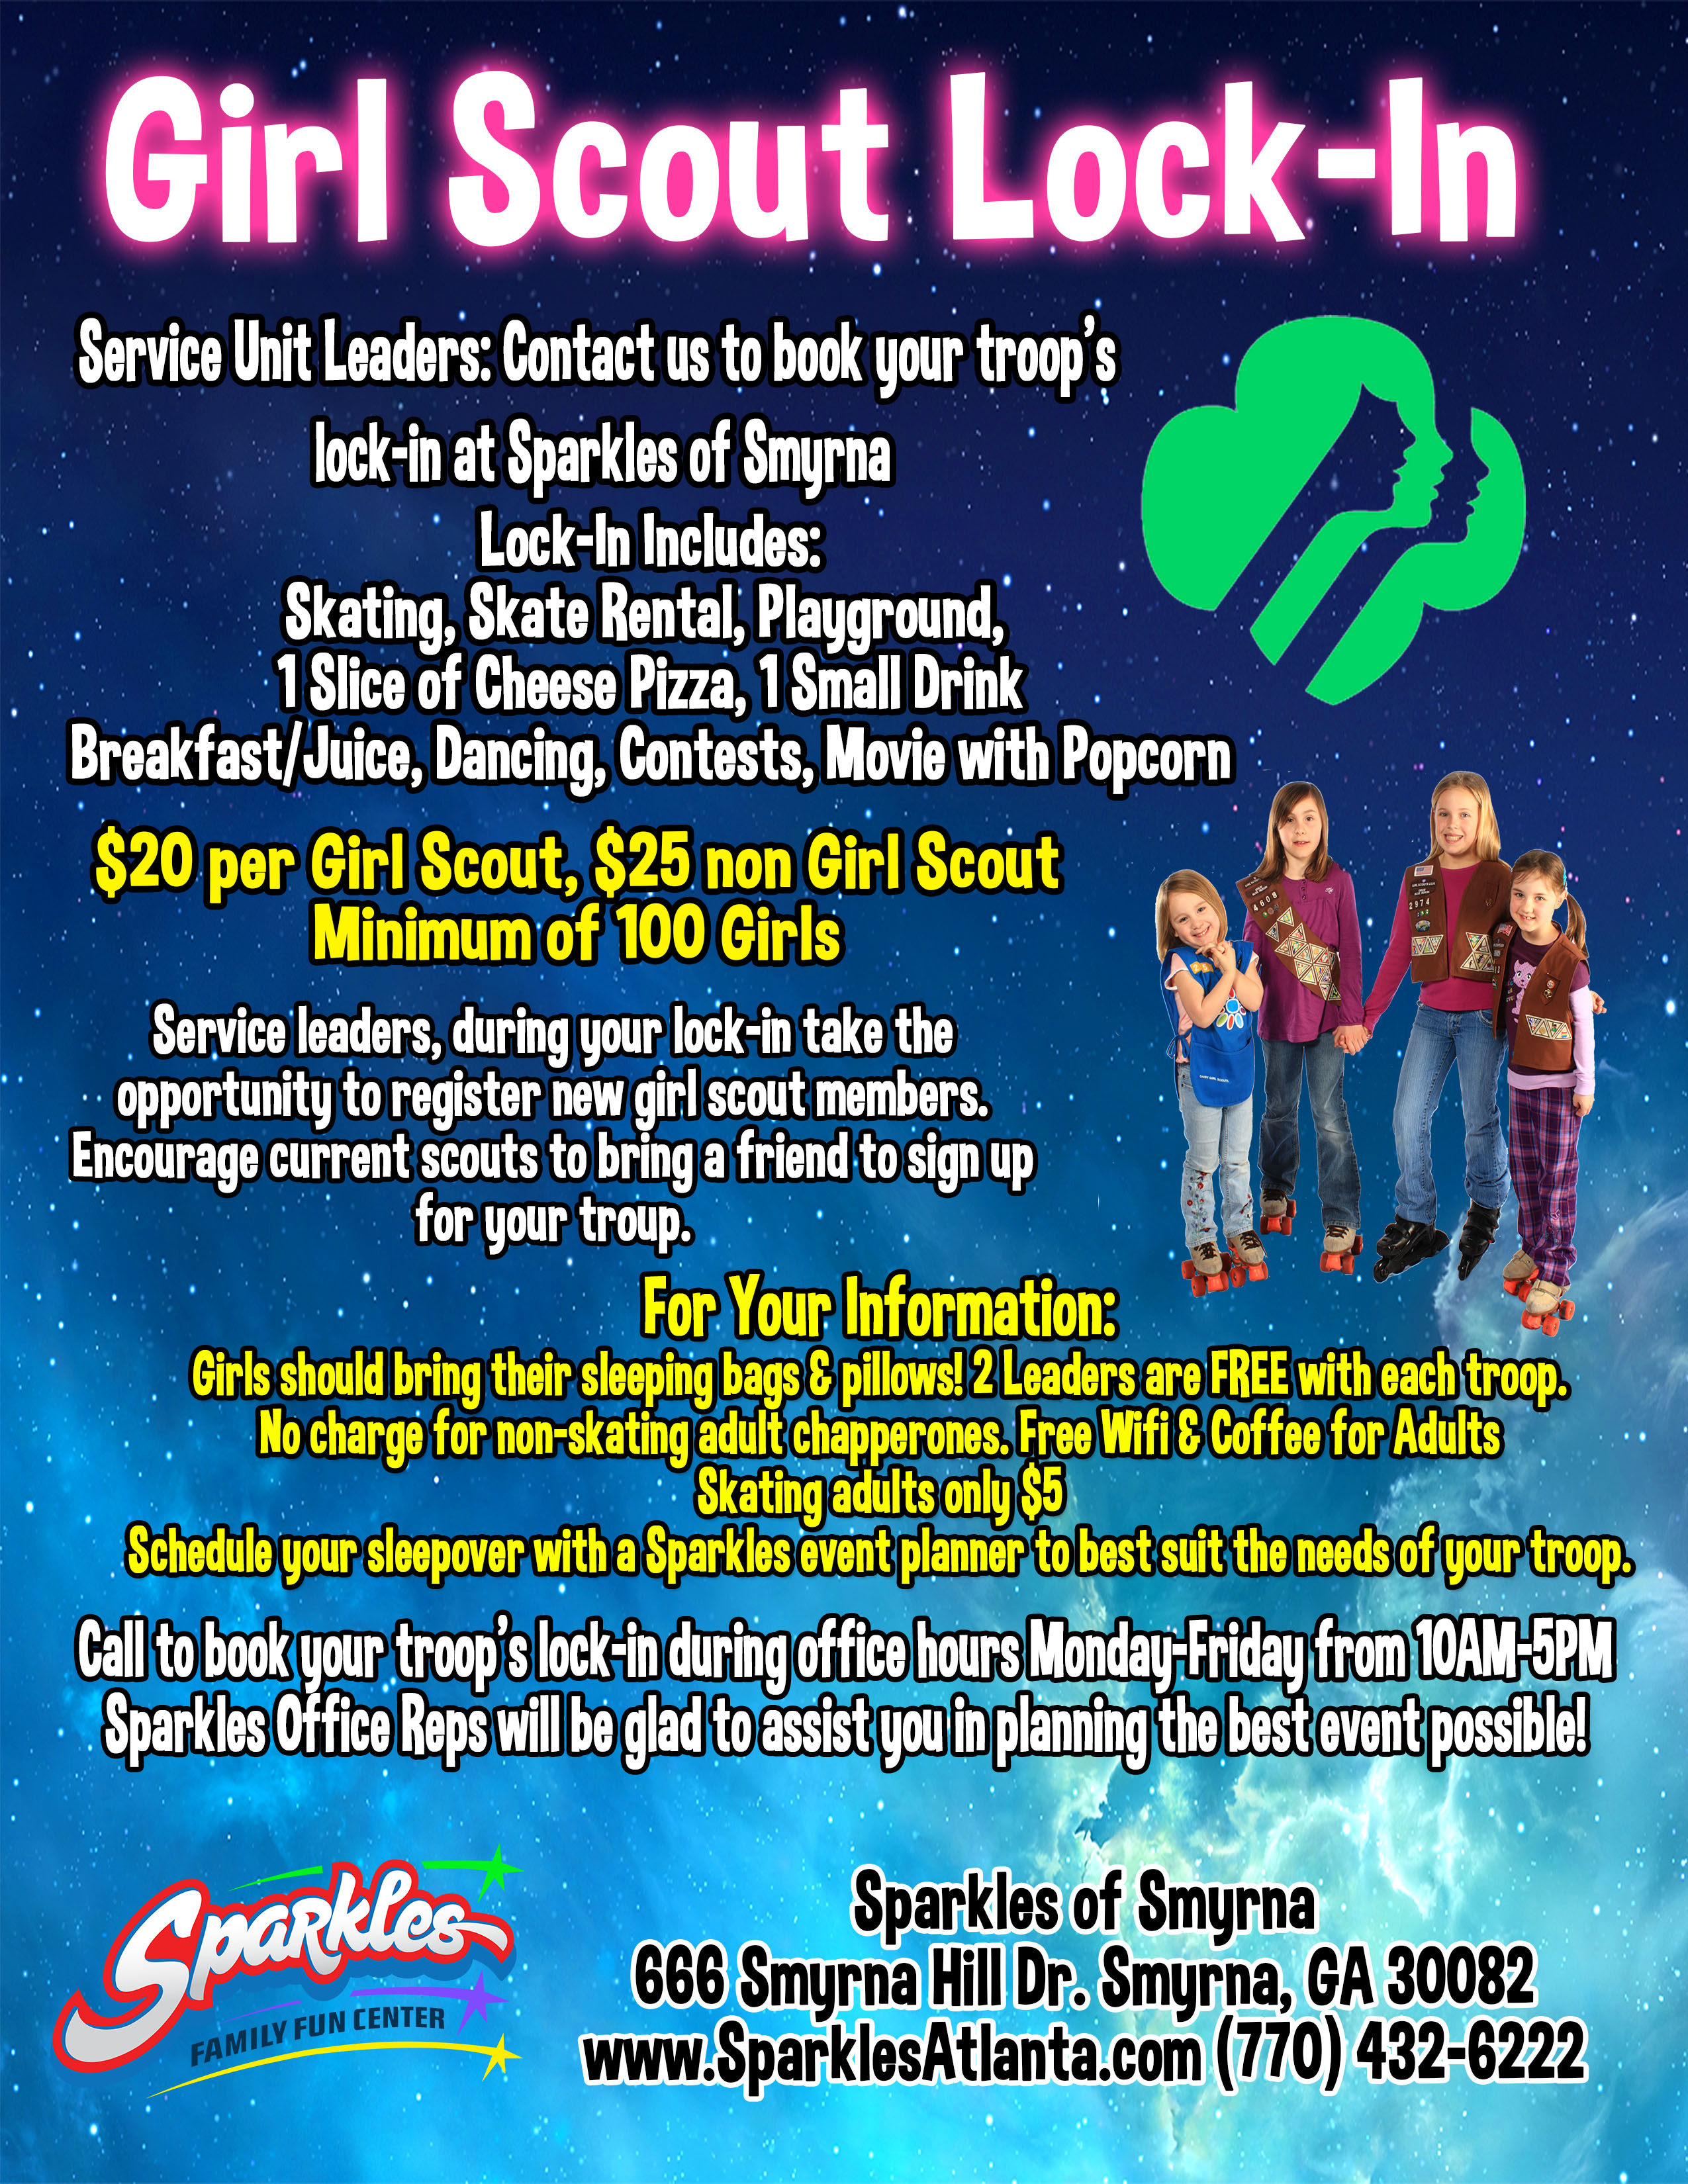 Girl Scout Lockin Flyer